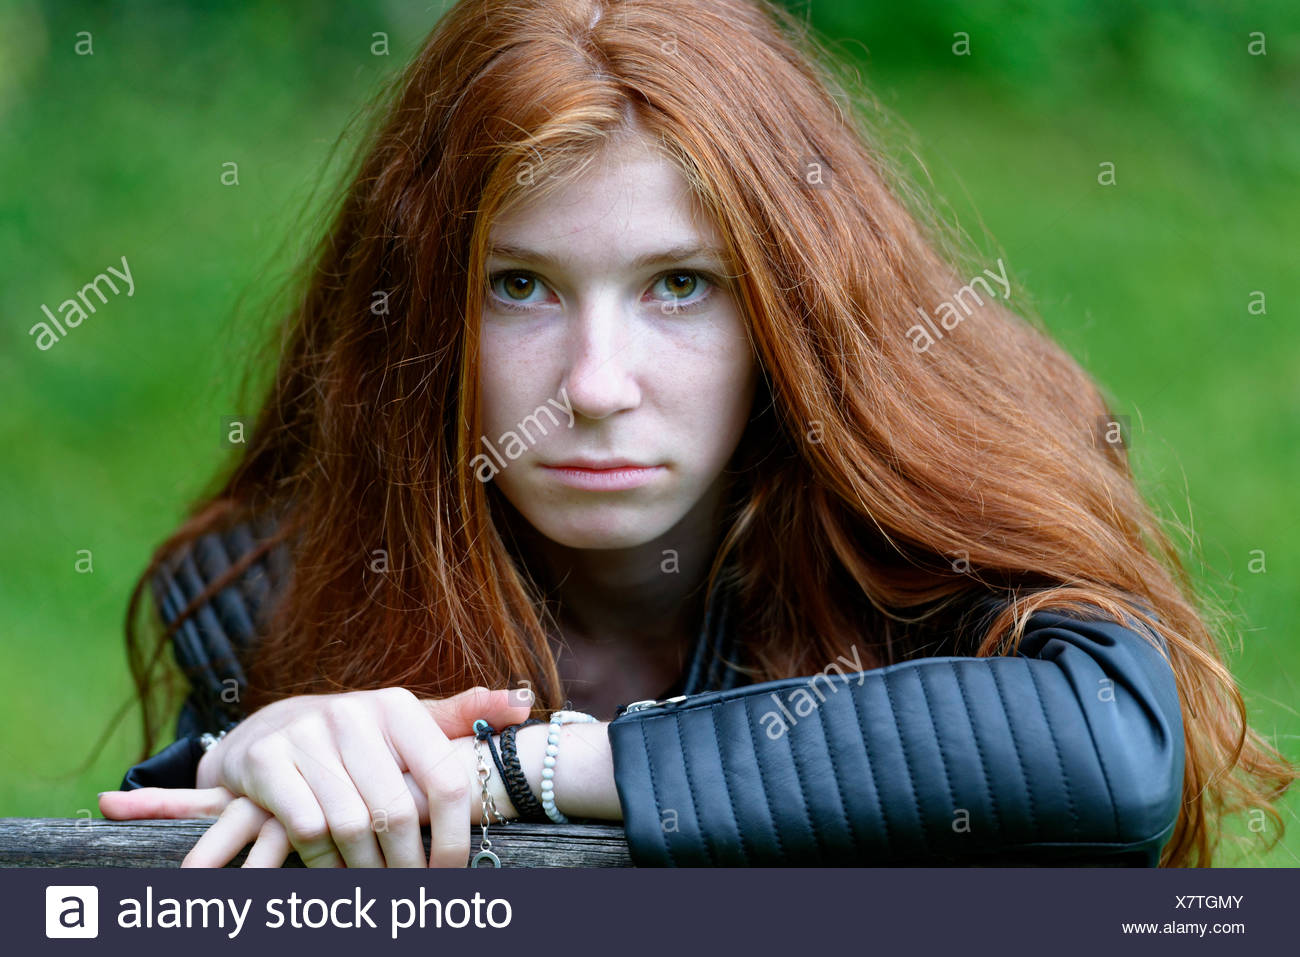 Female teenager, thoughtful disposition, portrait, Upper Bavaria, Bavaria, Germany - Stock Image